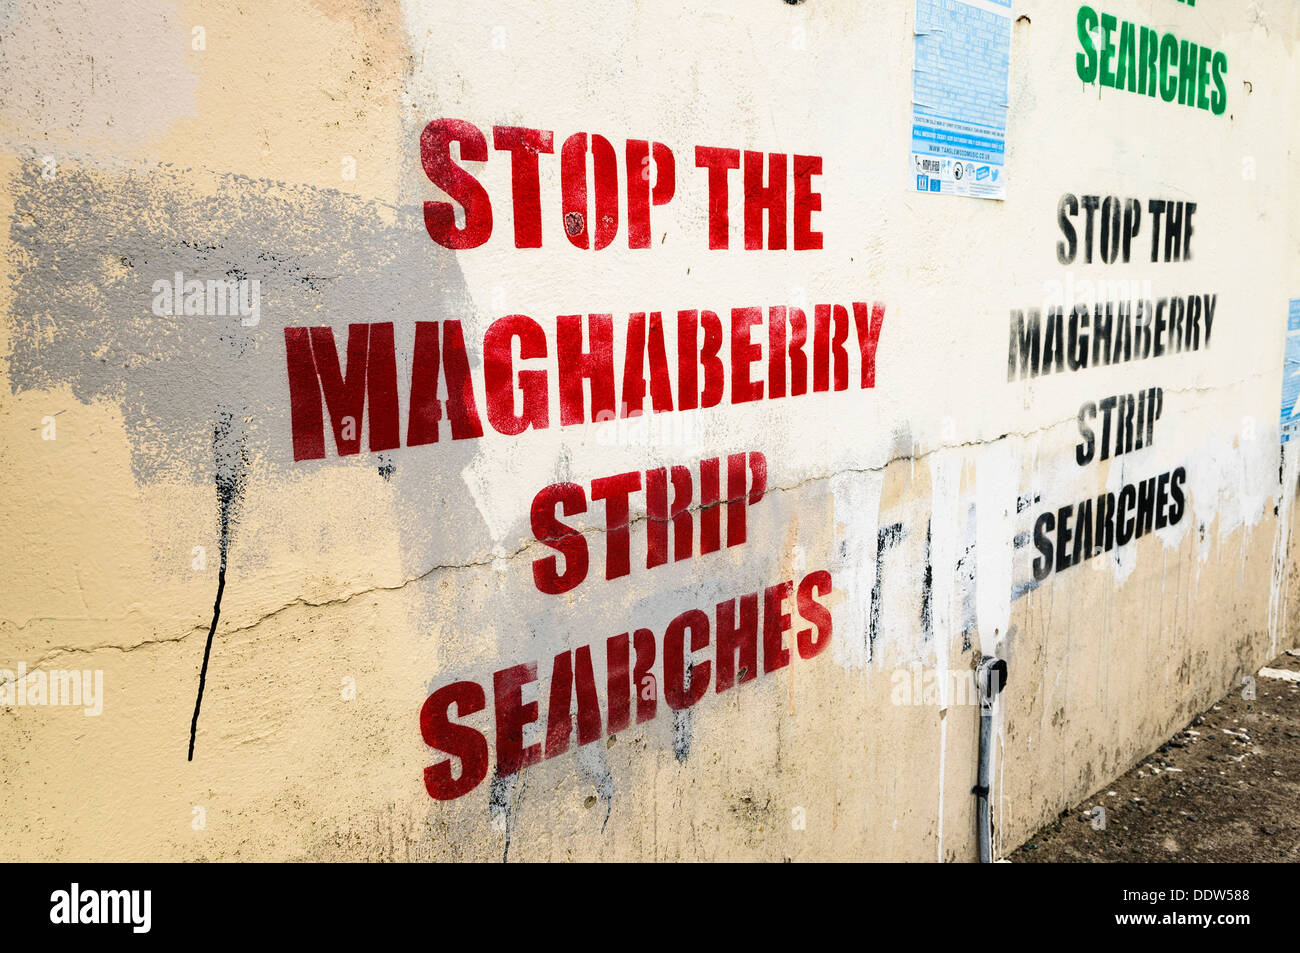 Stenciled graffiti on a wall saying 'Stop the Maghaberry strip searches' - Stock Image